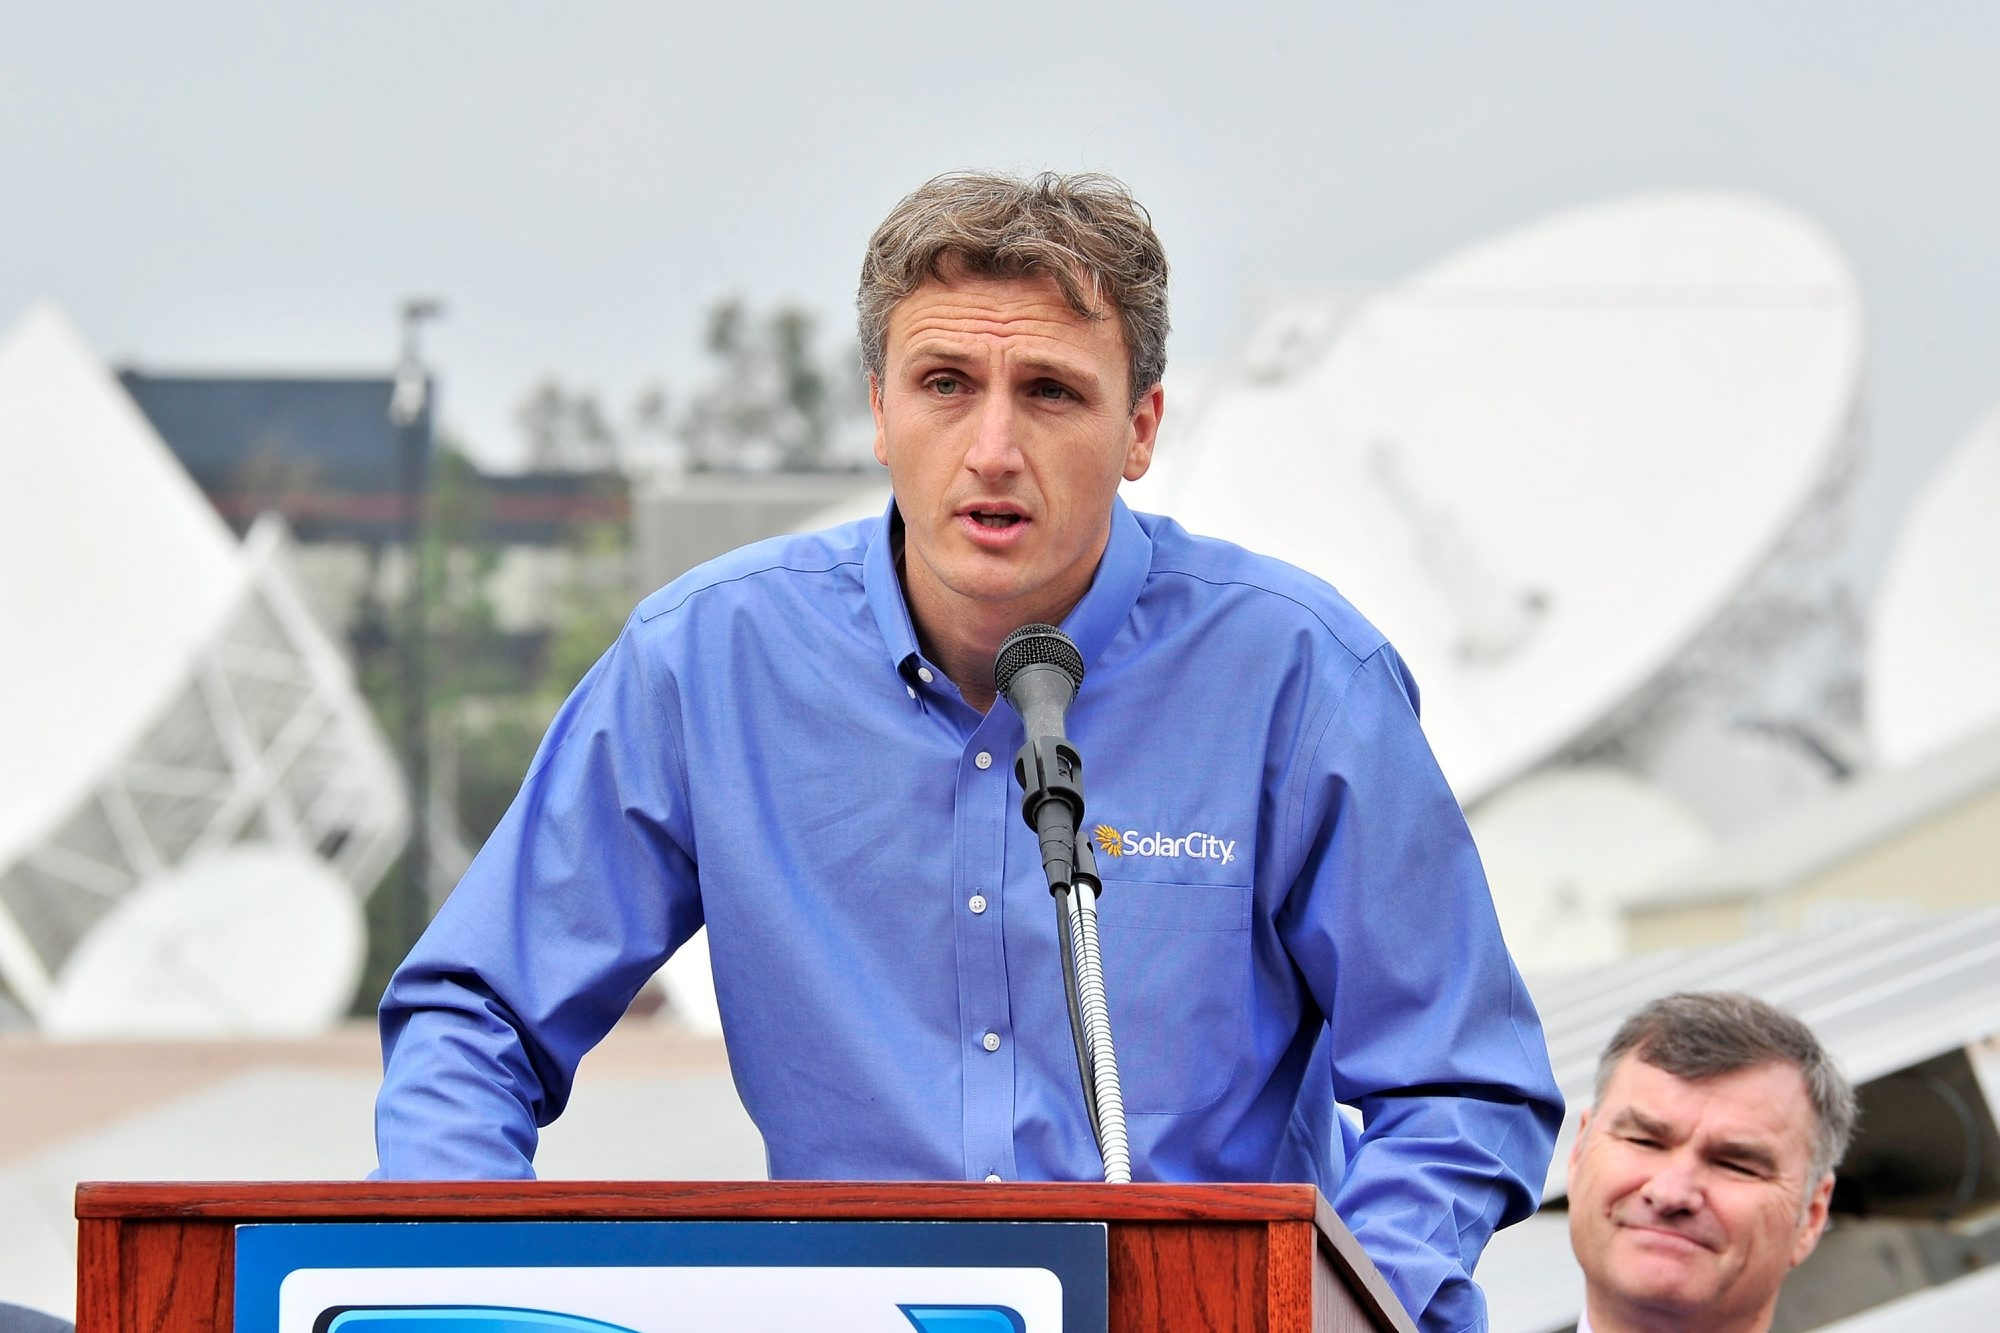 Lyndon Rive, SolarCity CEO and co-founder, has kept high profile promoting the company's expansion, including the factory under construction in Buffalo. SolarCity stock shares have lost 30 percent of their value since April 21.